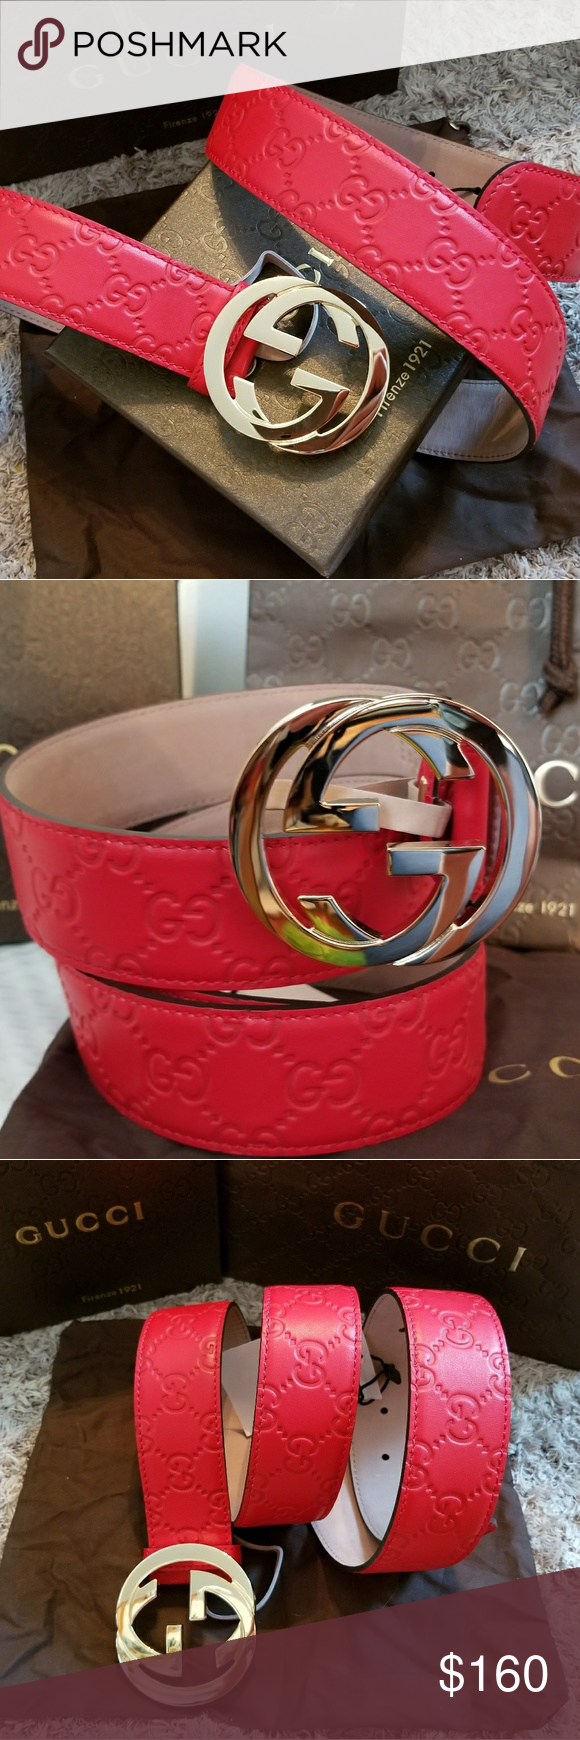 24c230452 😍Authentic Gucci Belt Red Guccissima Gold Buckle 😍Brand New Gucci Belt  Red Guccissima Print with Gold GG Buckle. HOT! Comes with tags, dust bag  and box.